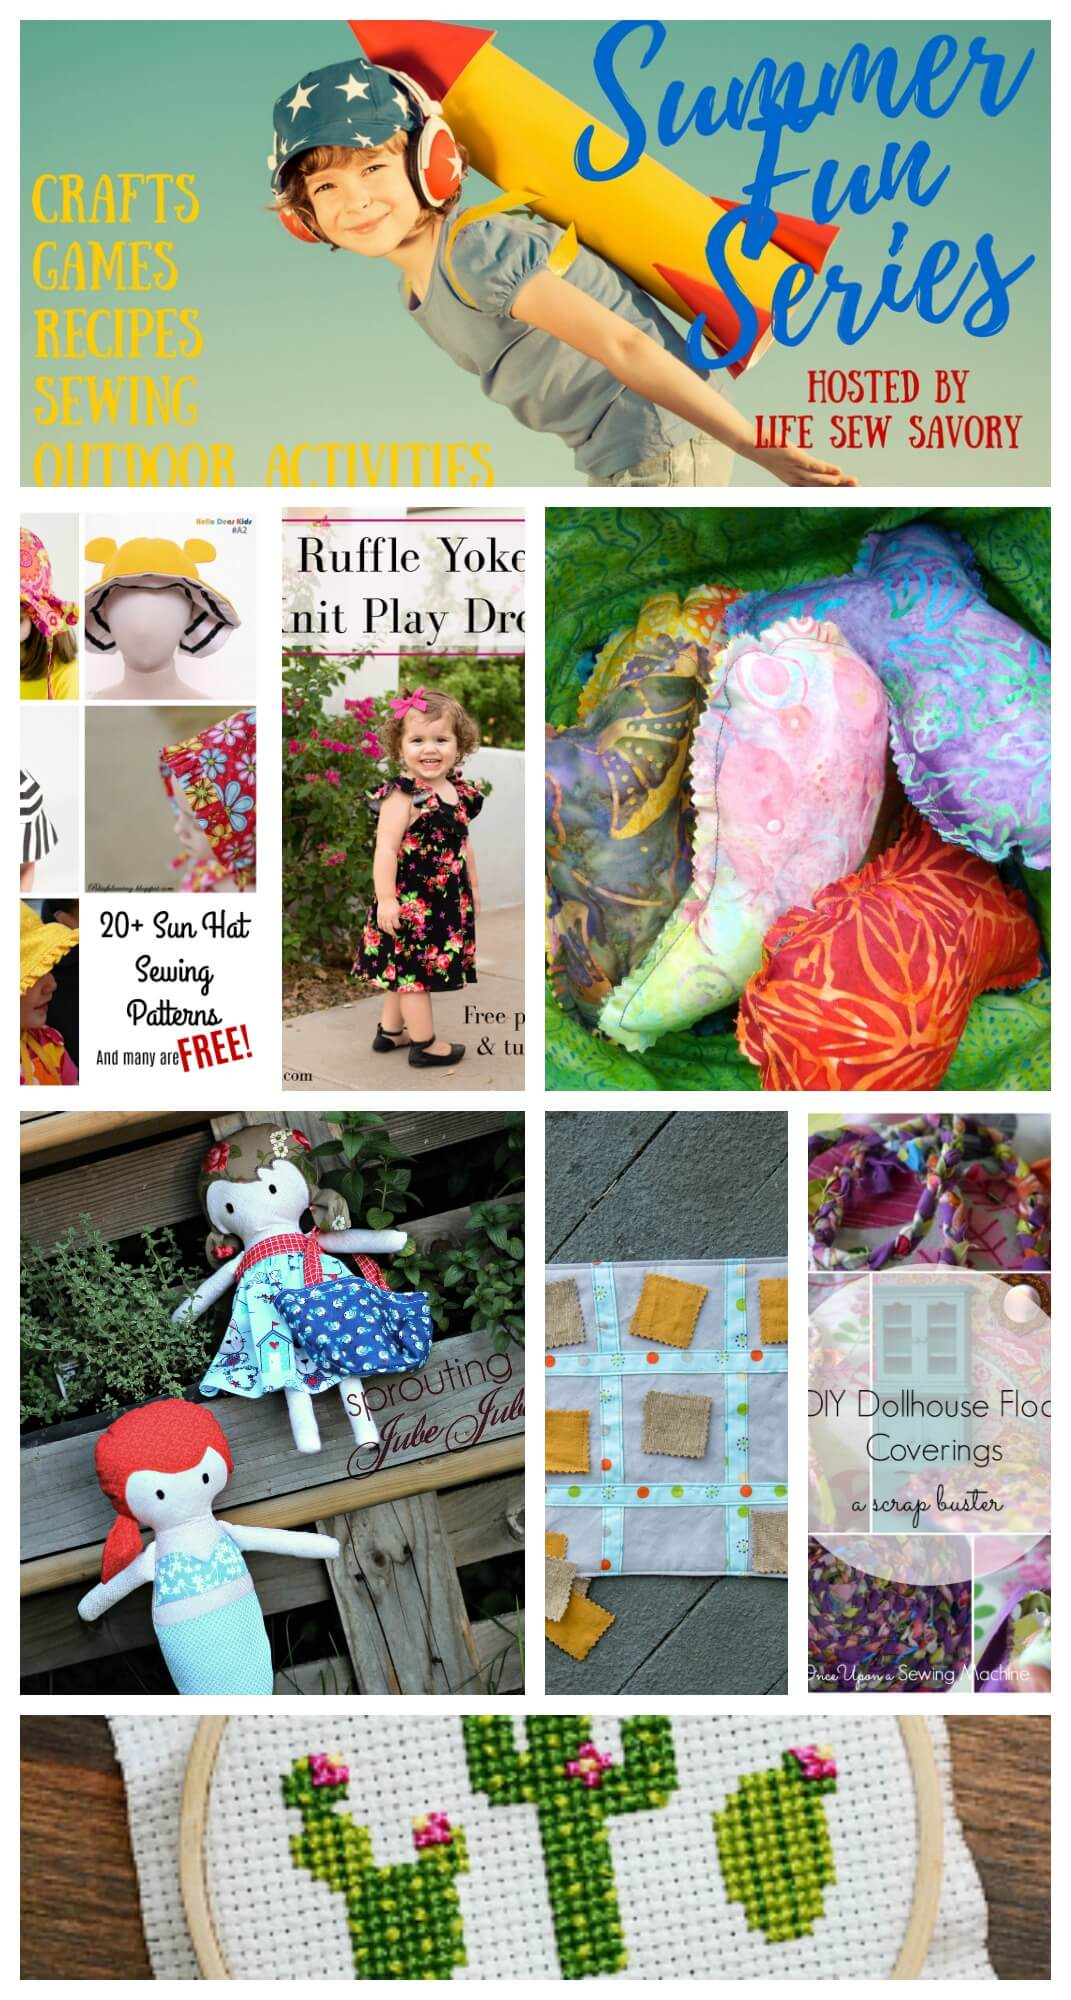 summer sewing projects for kids the Summer Fun series by Life Sew Savory